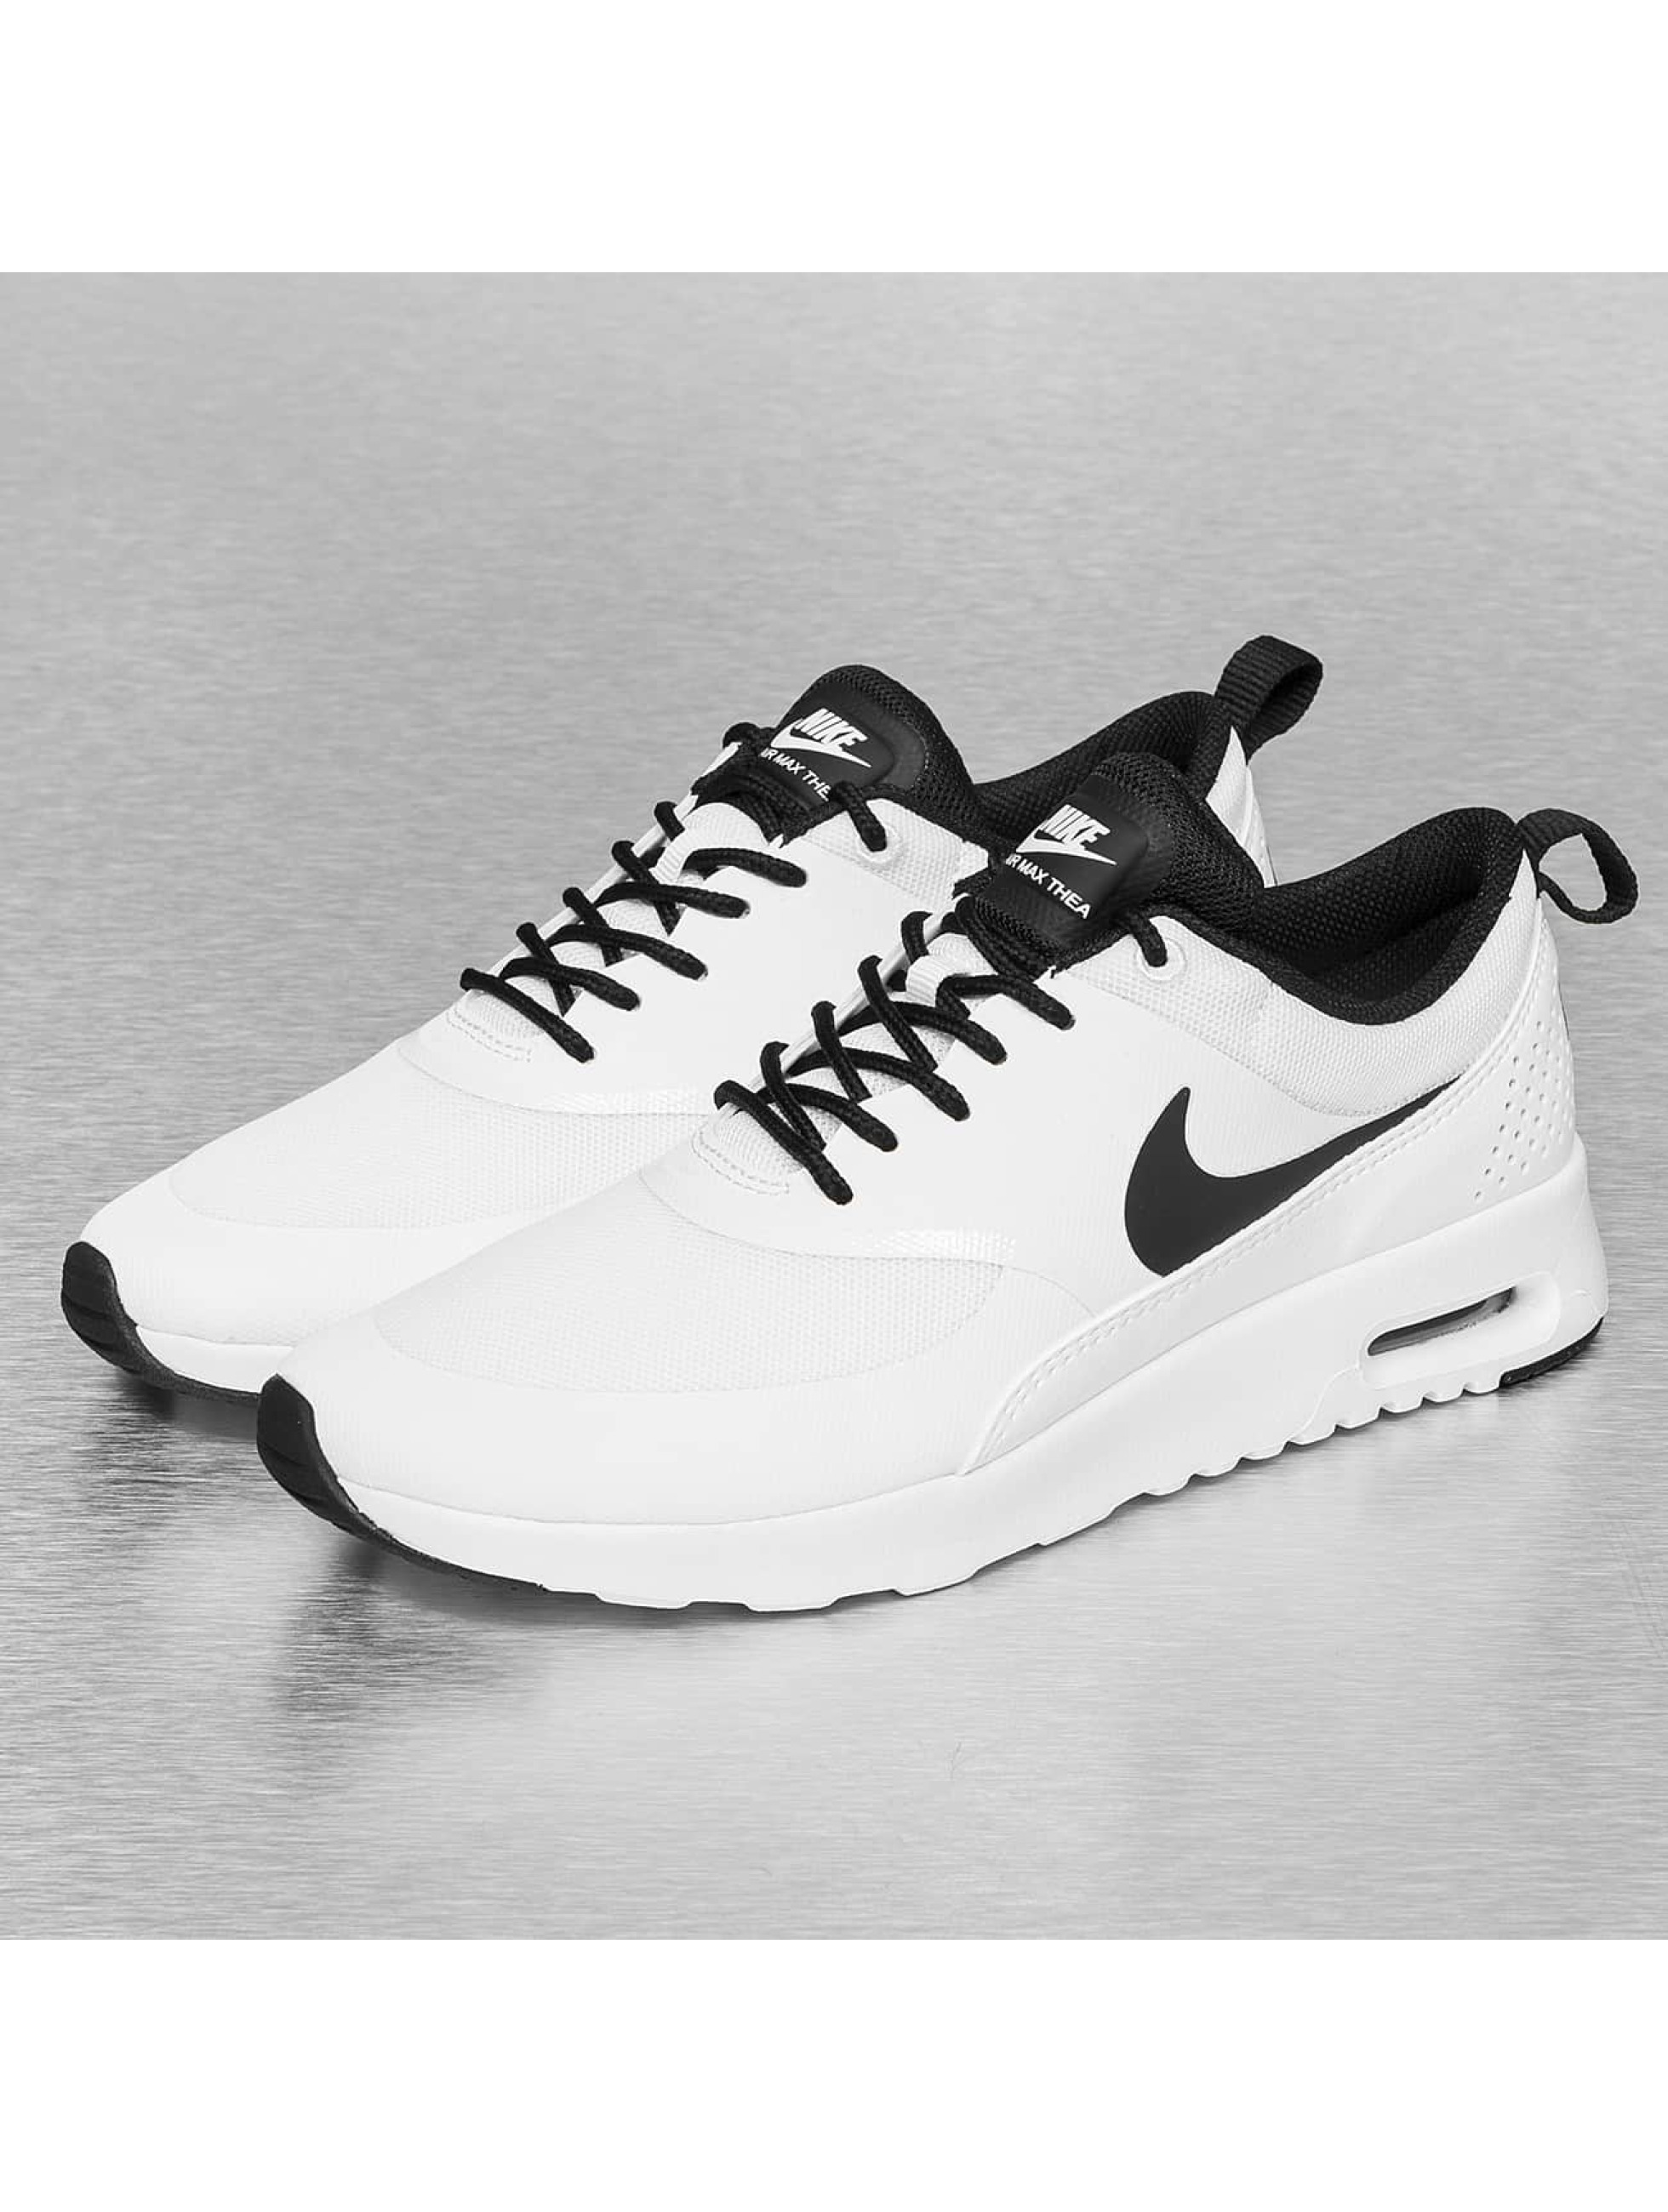 nike schoen sneaker air max thea in wit 219026. Black Bedroom Furniture Sets. Home Design Ideas